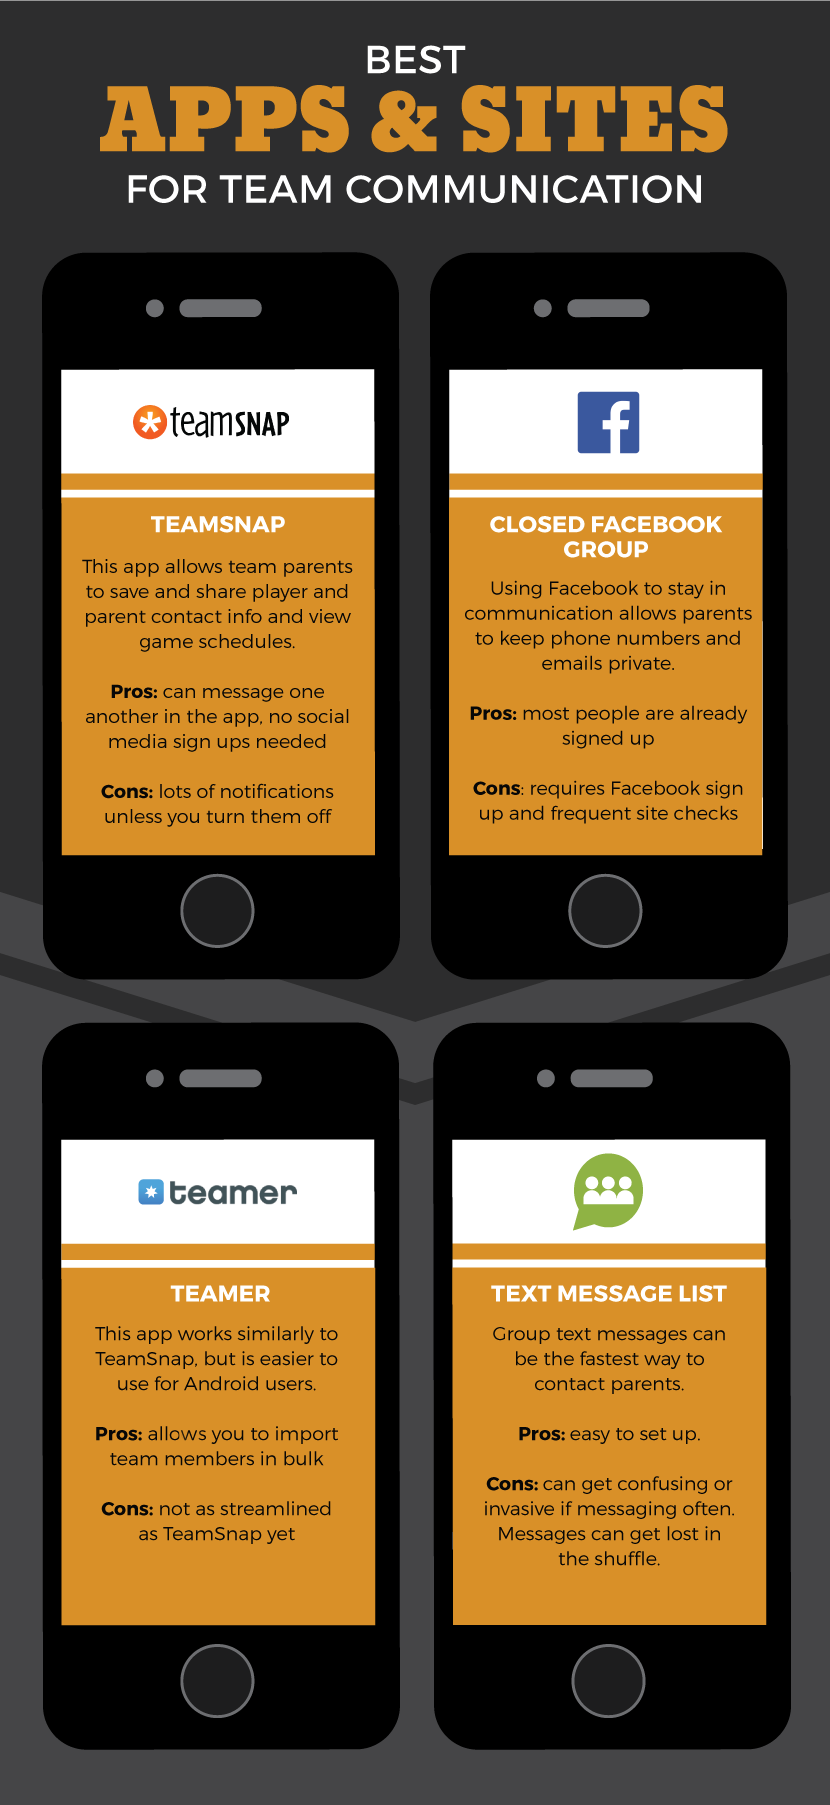 Apps For Sports Team Communication- How to be a Great Team Parent